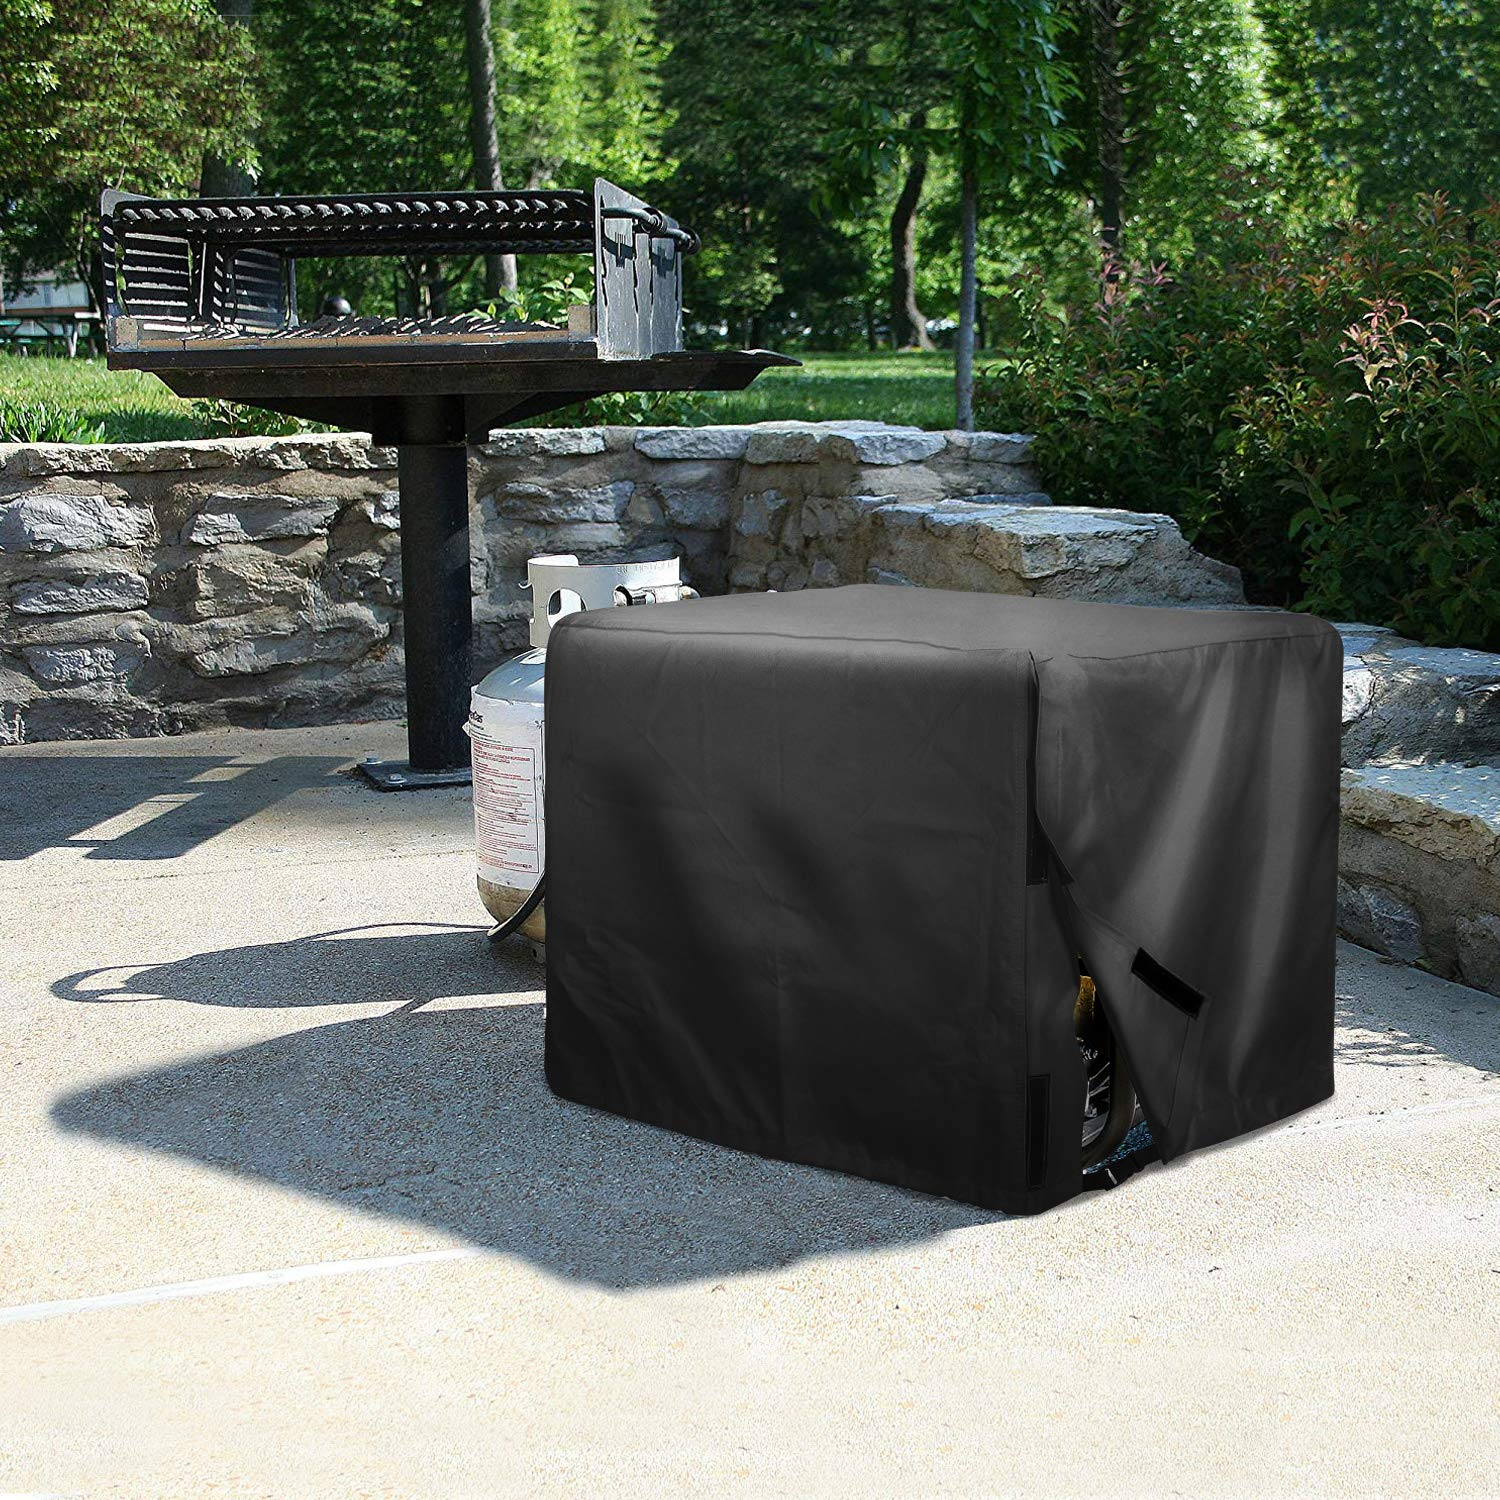 Leader Accessories Durable Universal Waterproof Generator Cover (31'' Lx 29'' Wx 28'' H, Black) by Leader Accessories (Image #6)